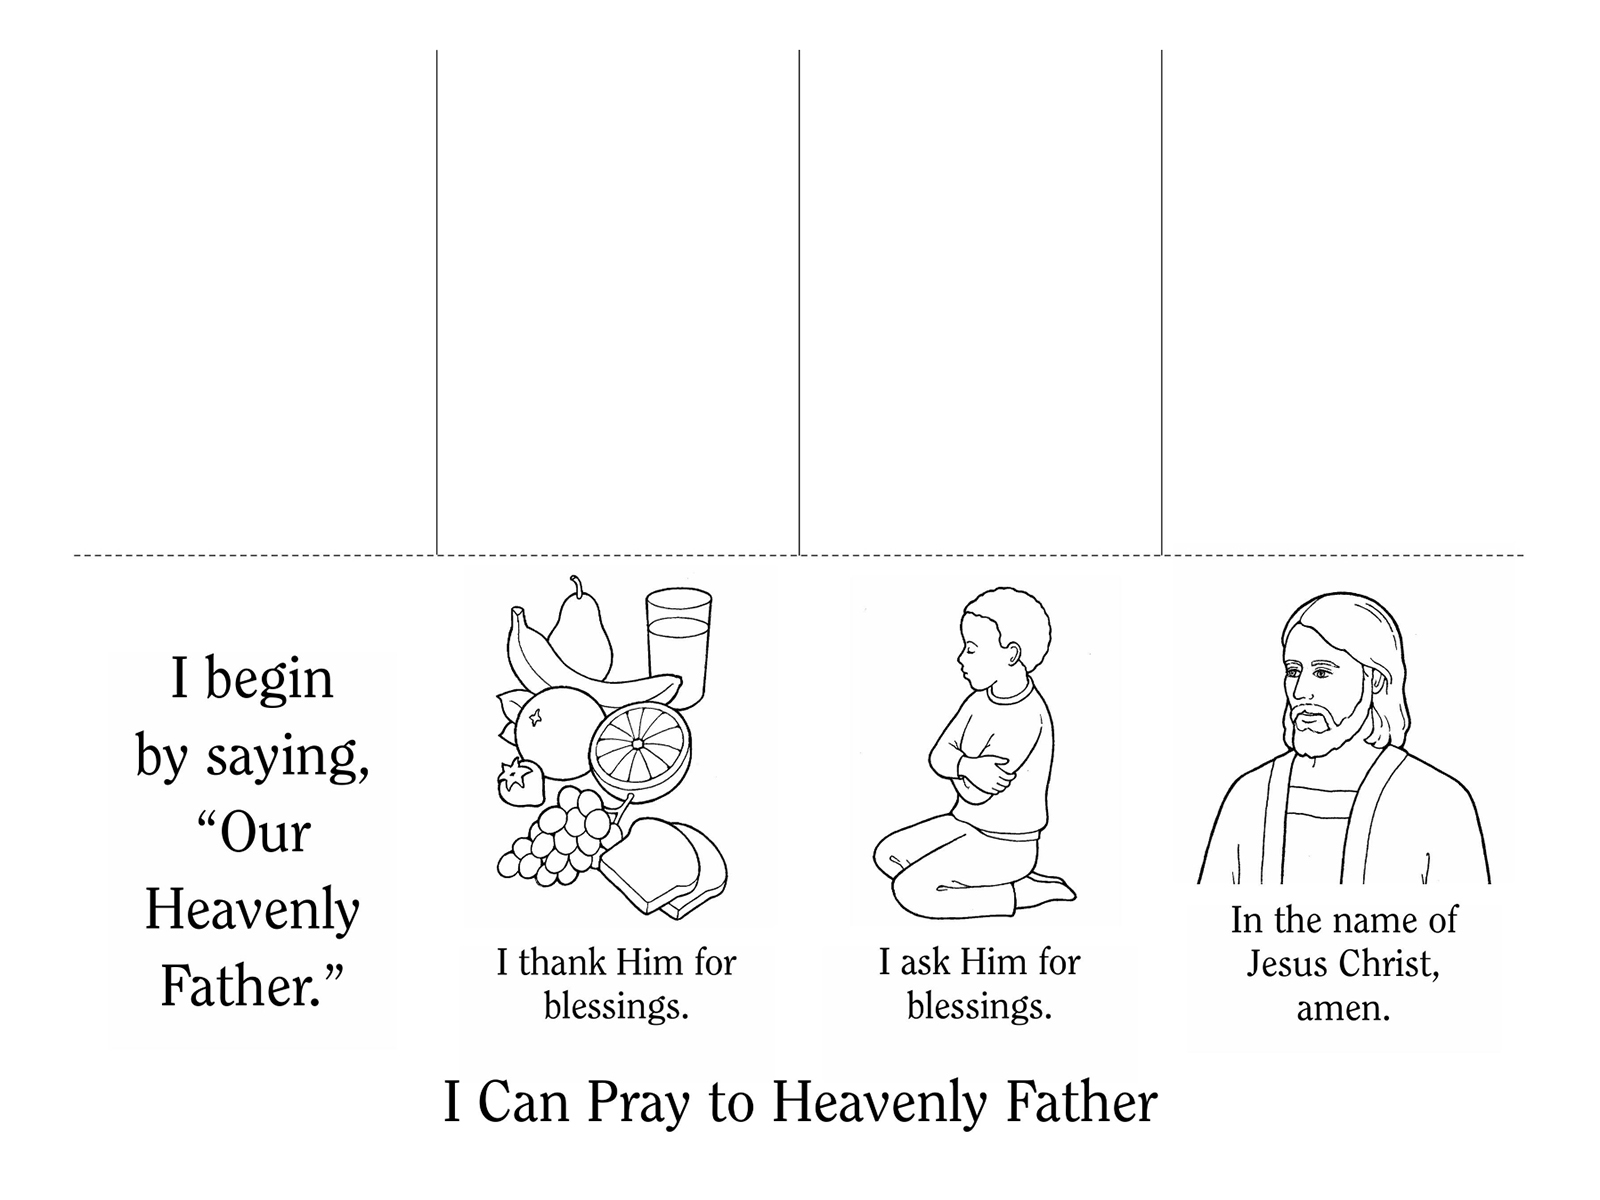 Primarily Inclined Primary 2 Lesson 10 I Can Speak With Heavenly